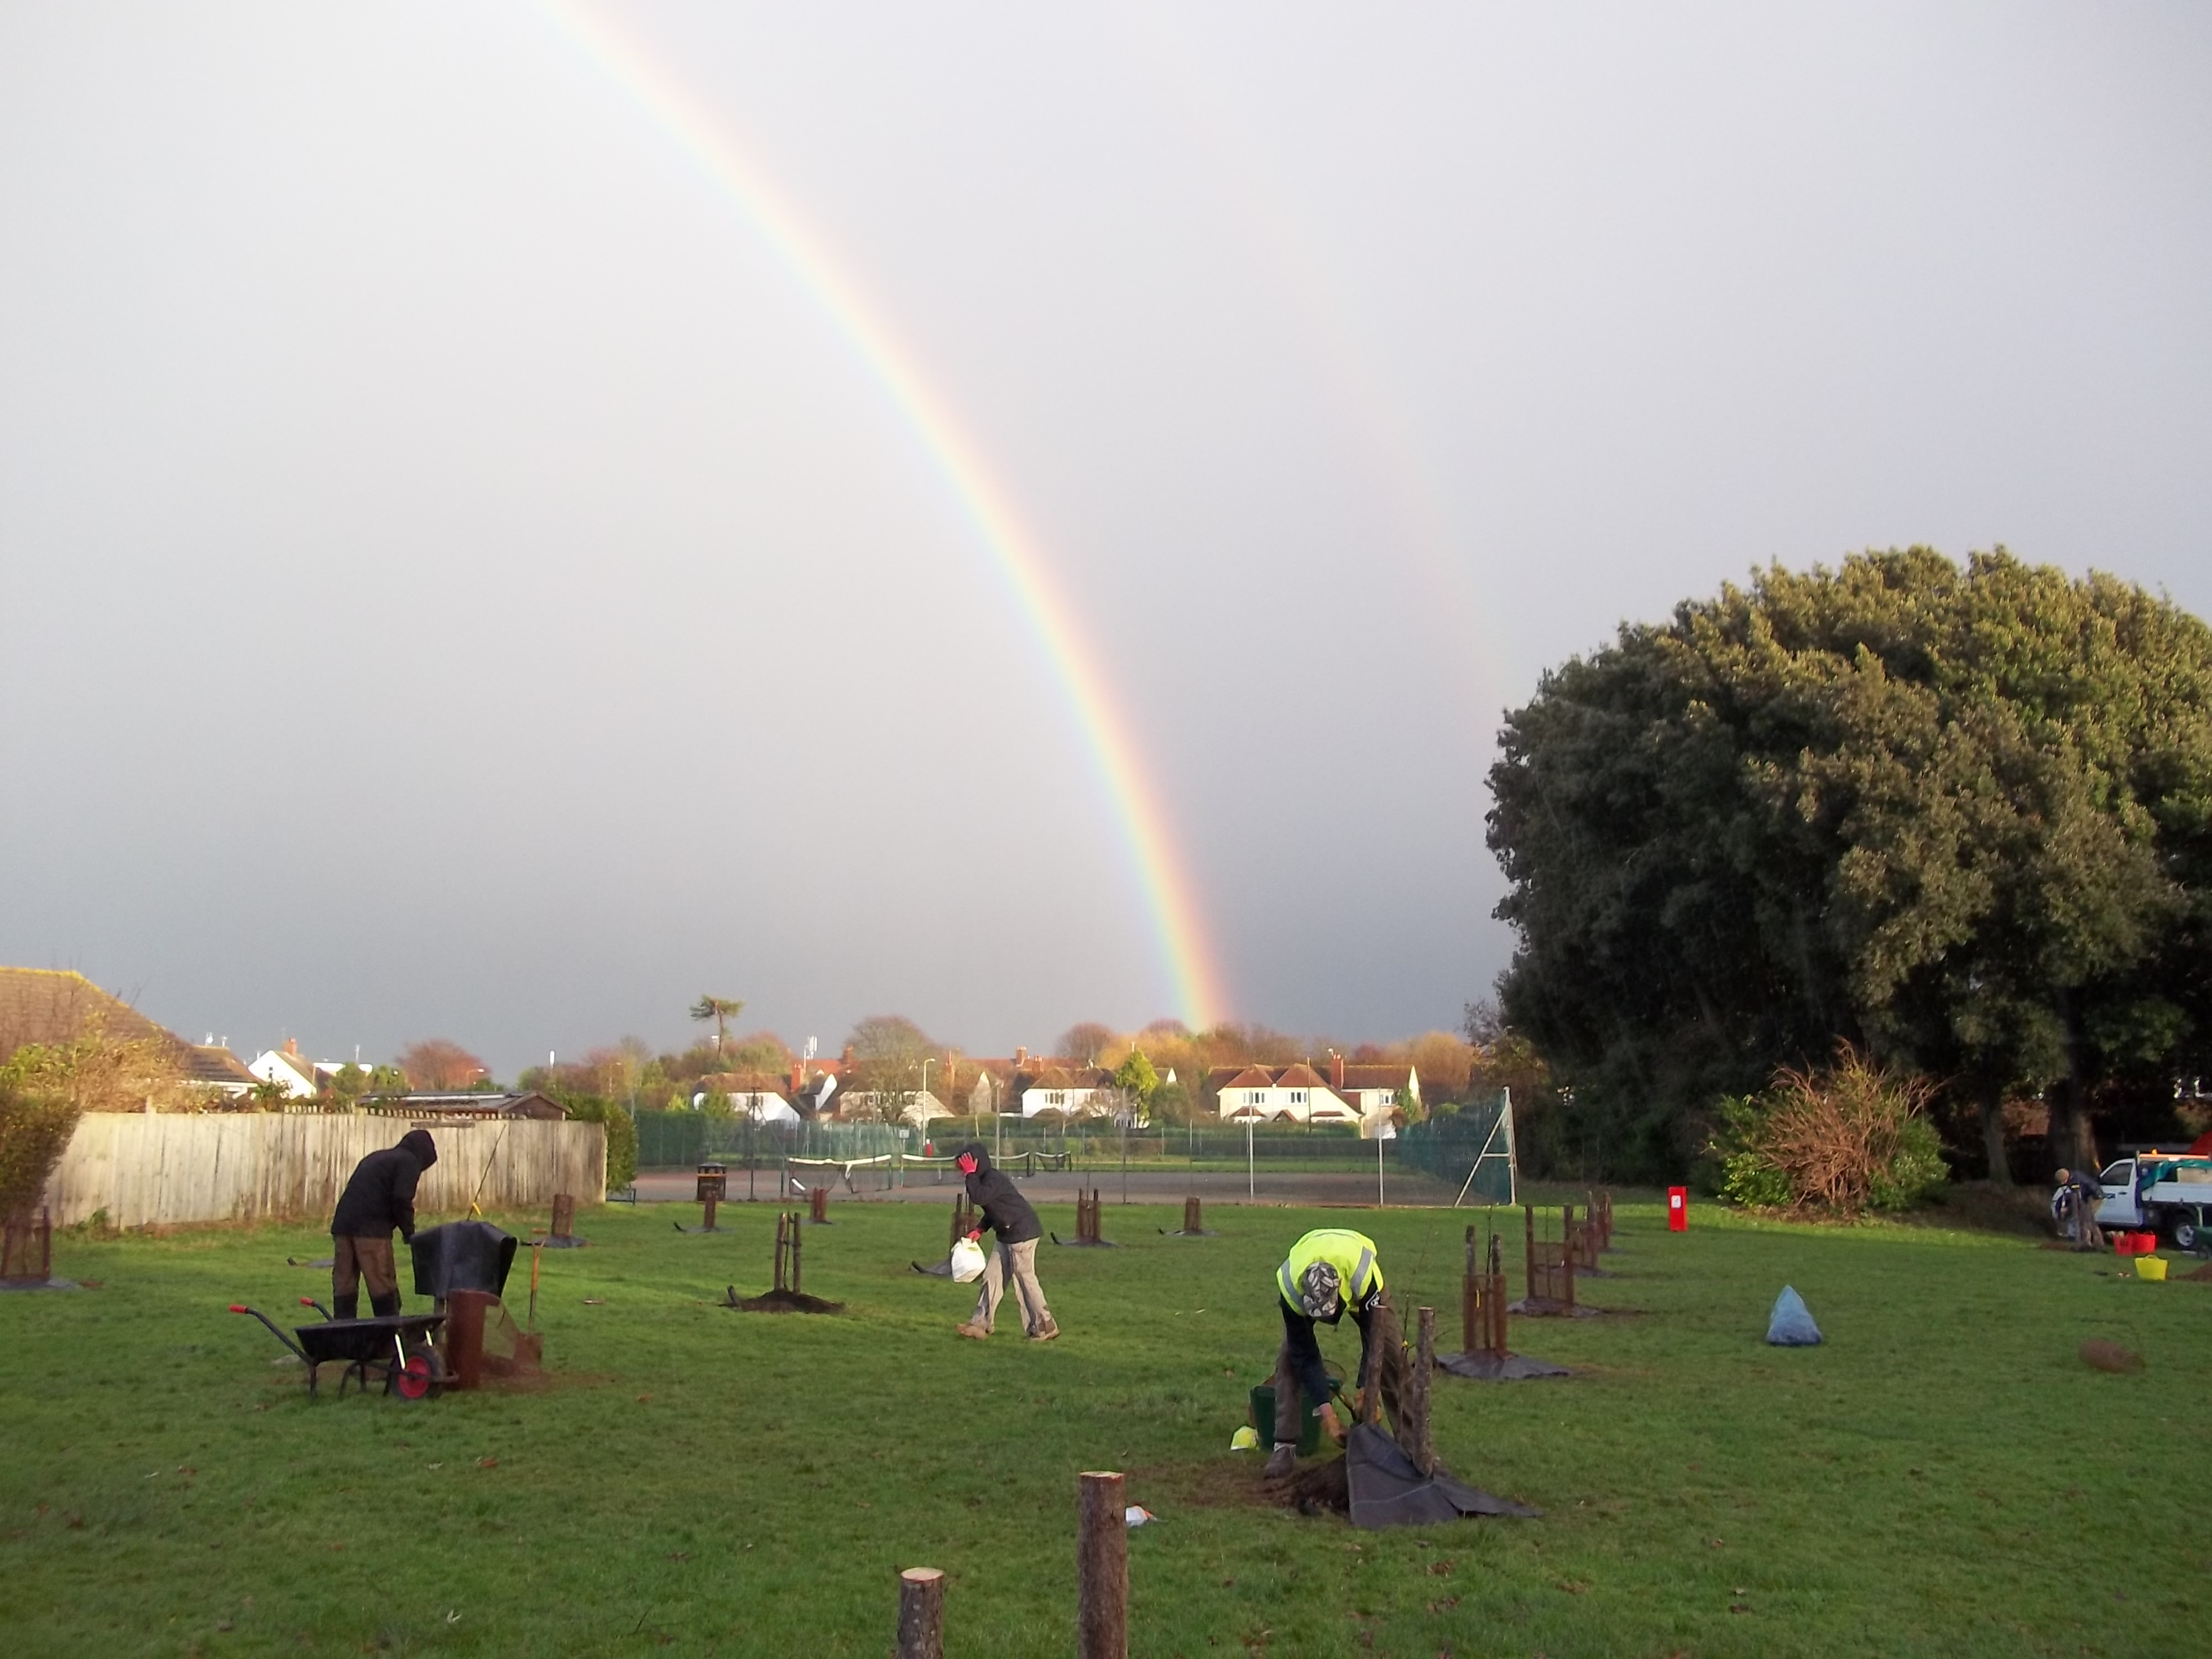 Maltravers Community Orchard